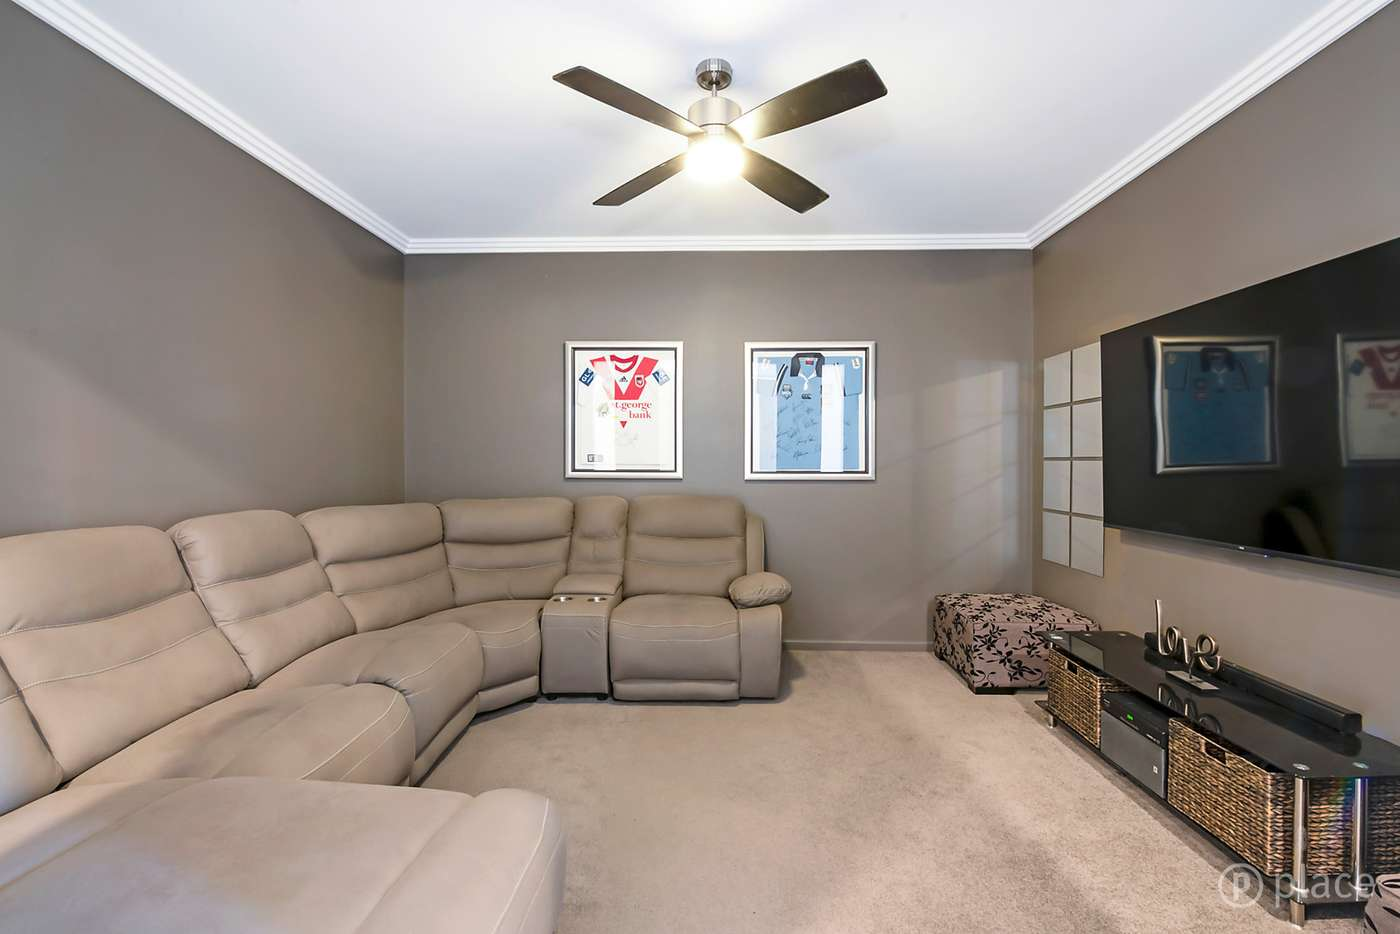 Fifth view of Homely house listing, 70 Eagle Parade, Rochedale QLD 4123